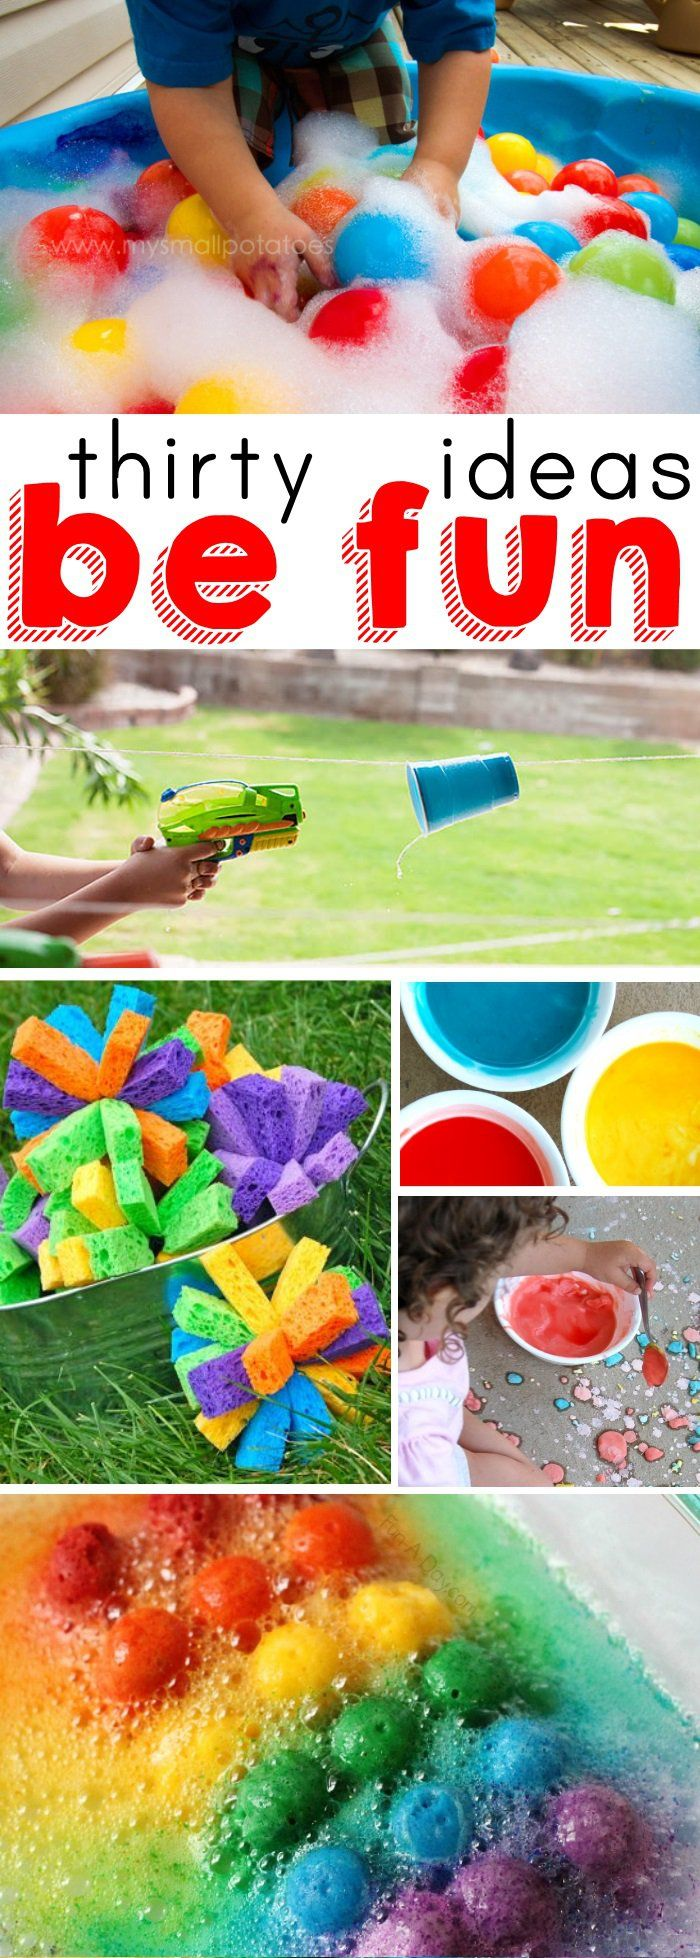 Fun Summer Ideas For Activities